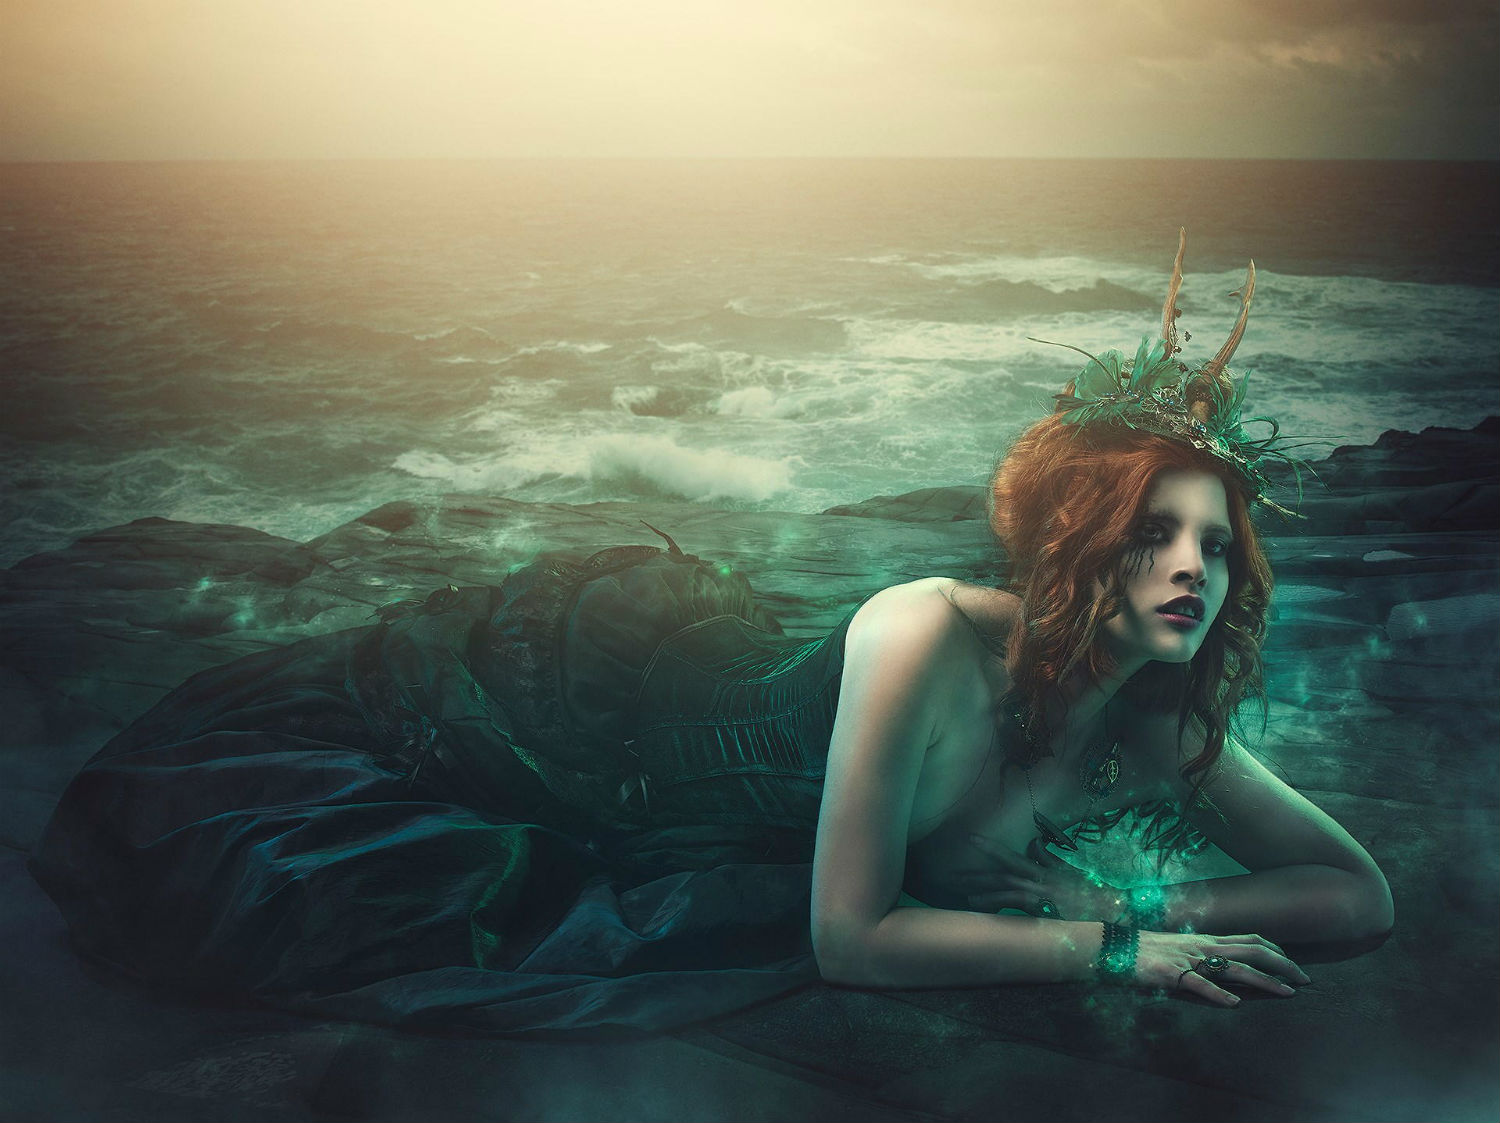 mermaid green rebecca saray photography surreal Digital fantasy